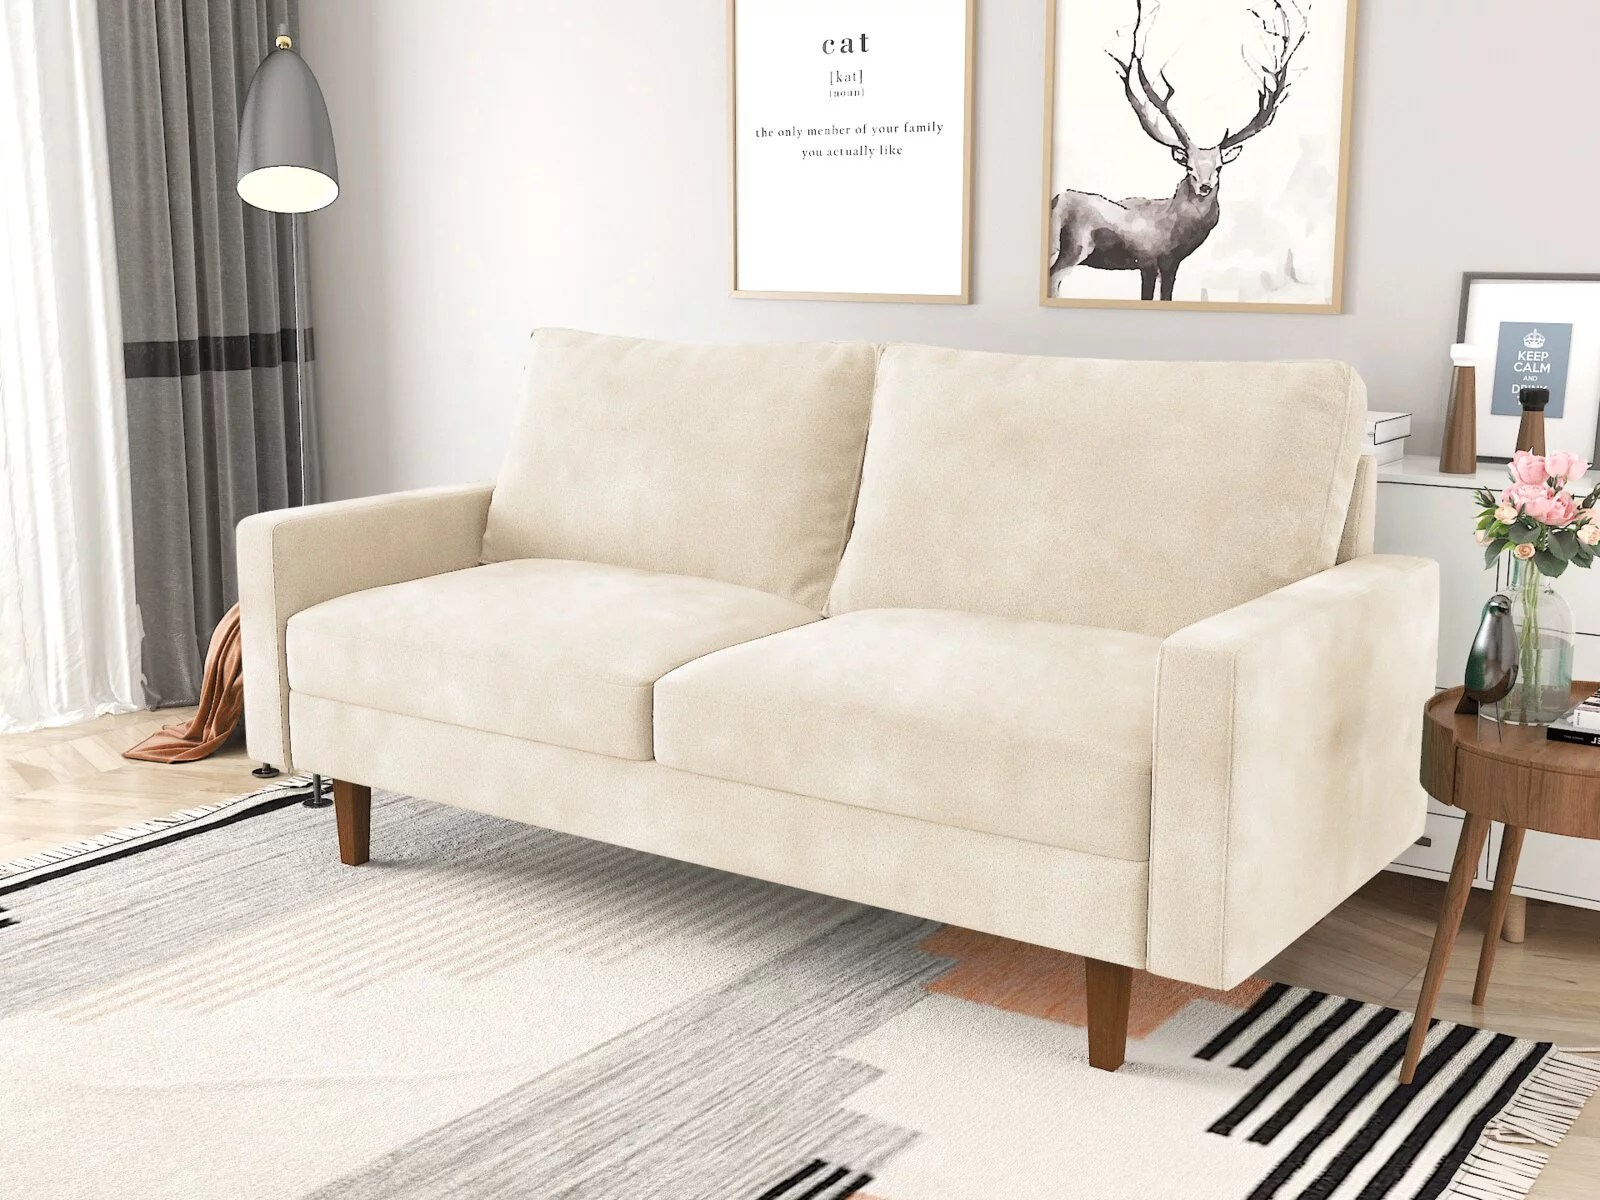 Best Cheap Couches Under 450 2021 Guide Popsugar Home